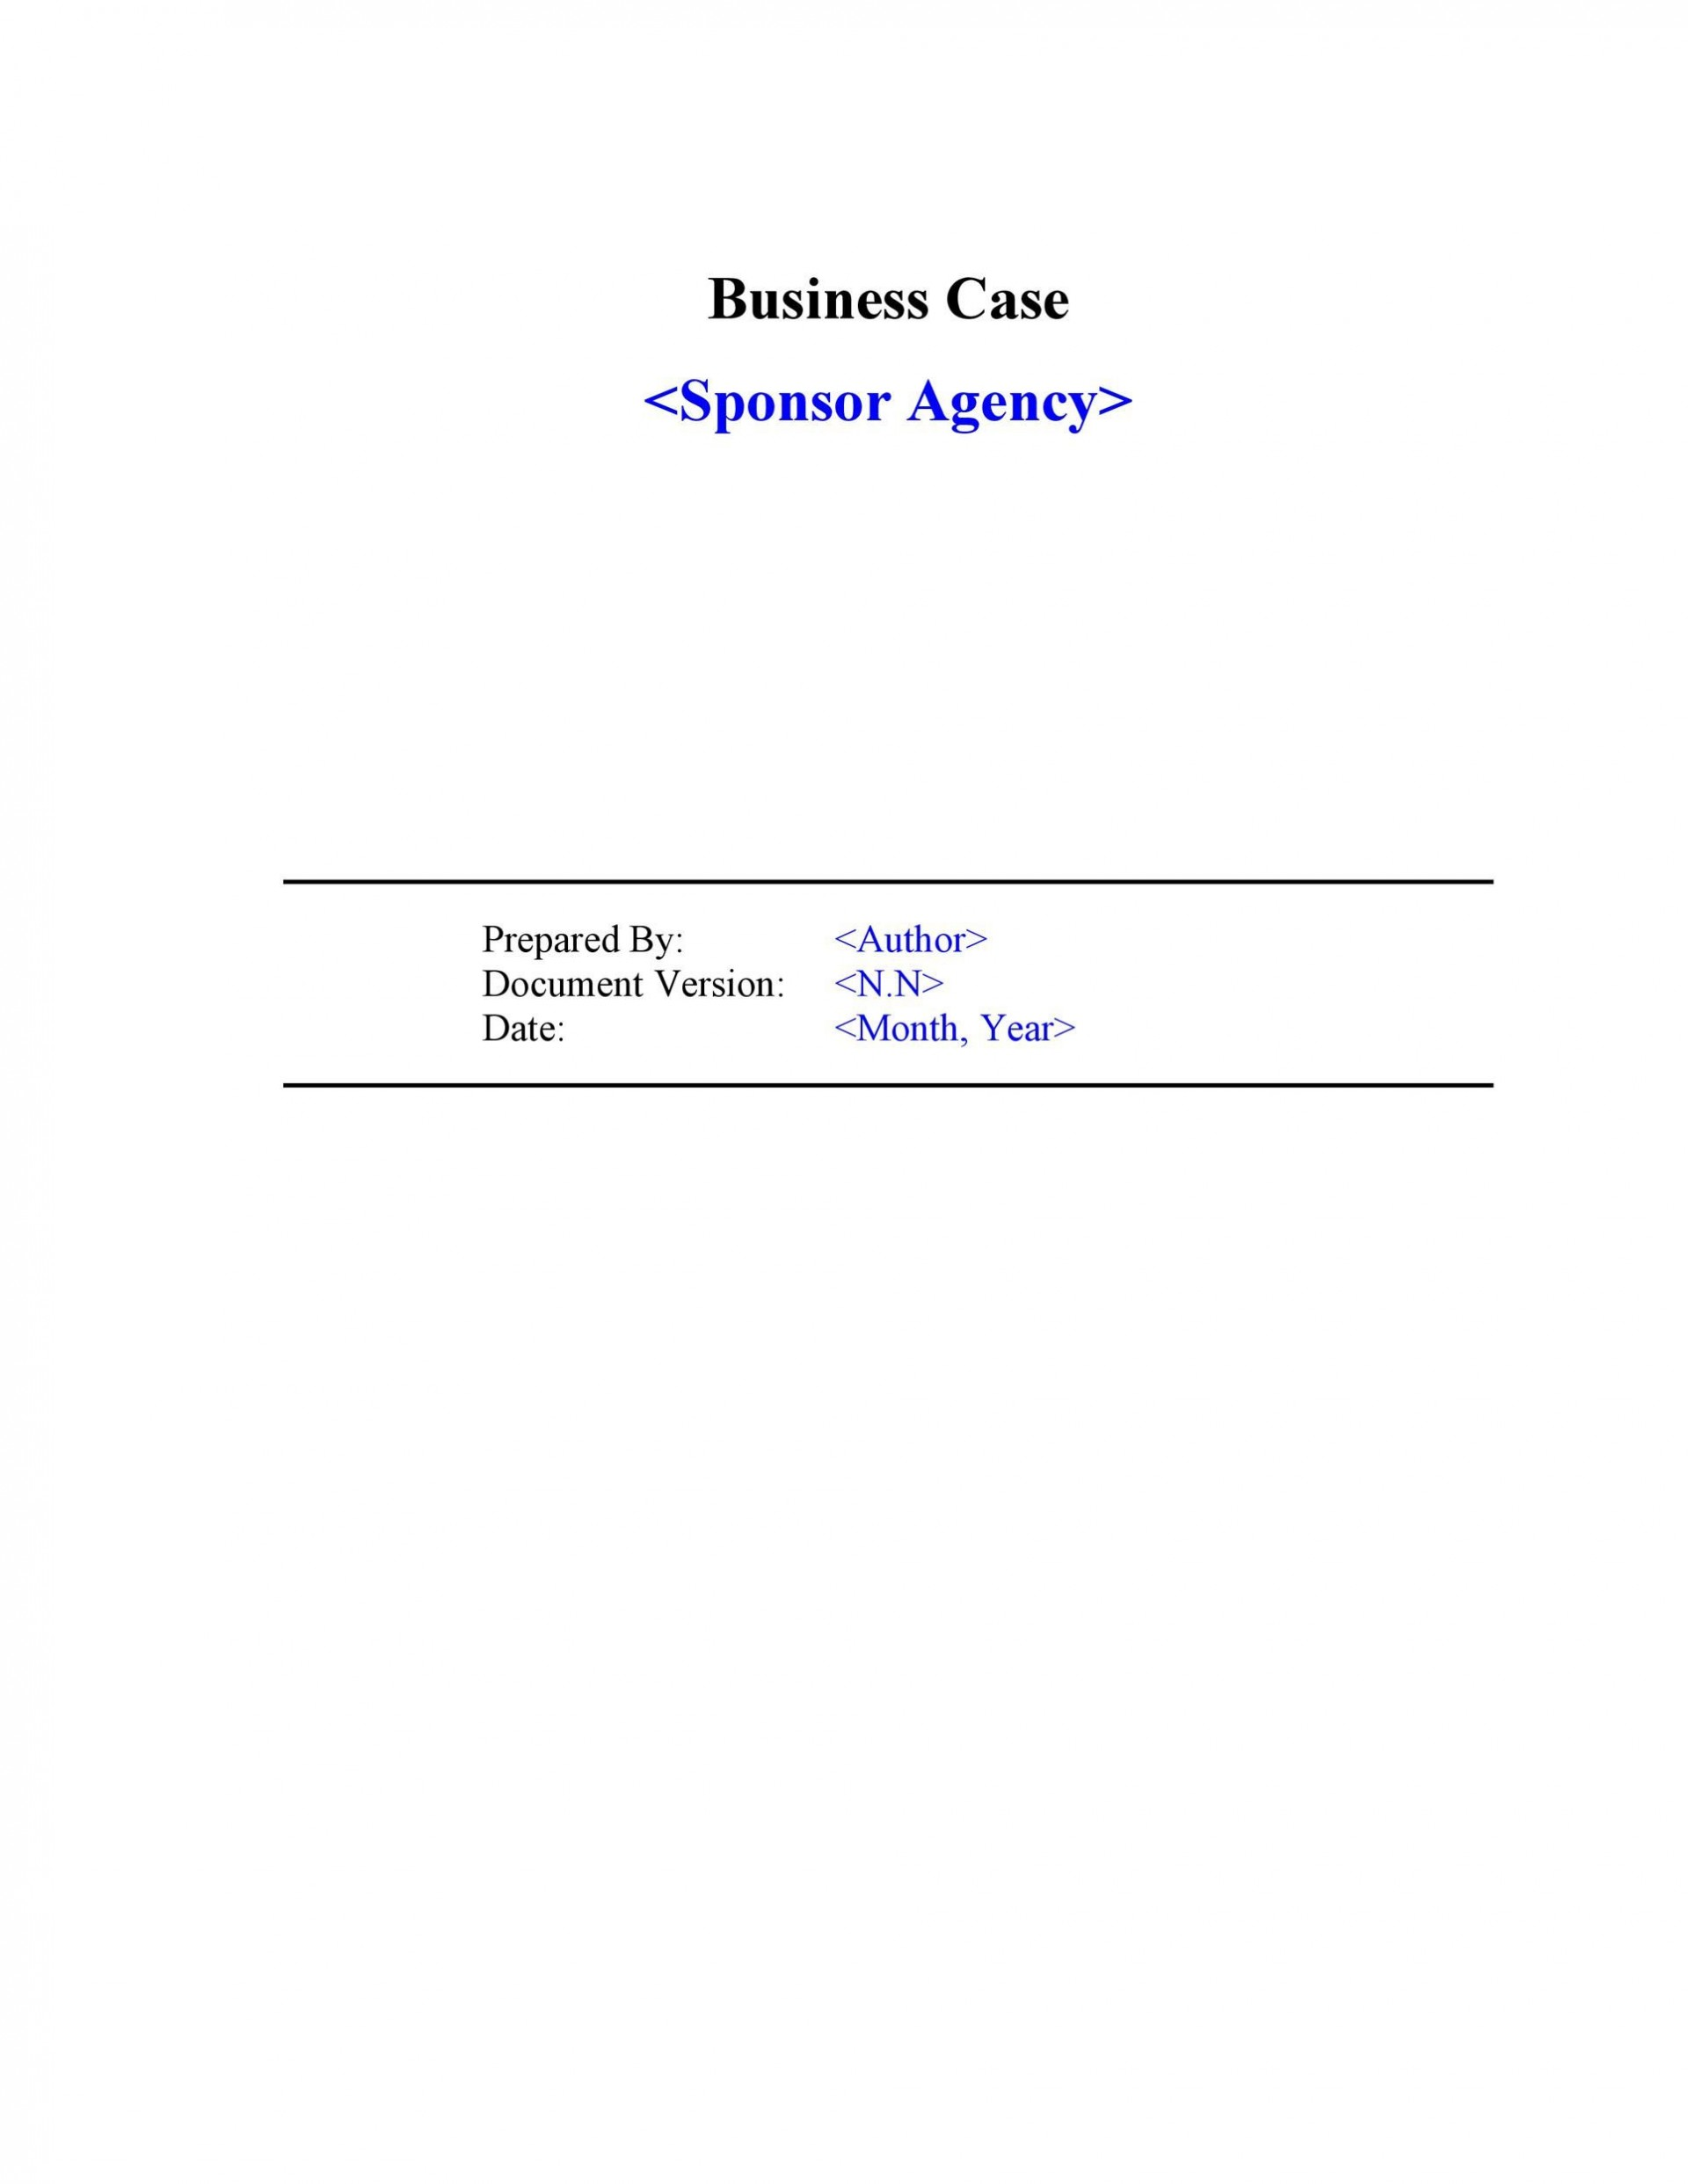 002 Awesome Busines Case Template Word Example  Download Document Project1920